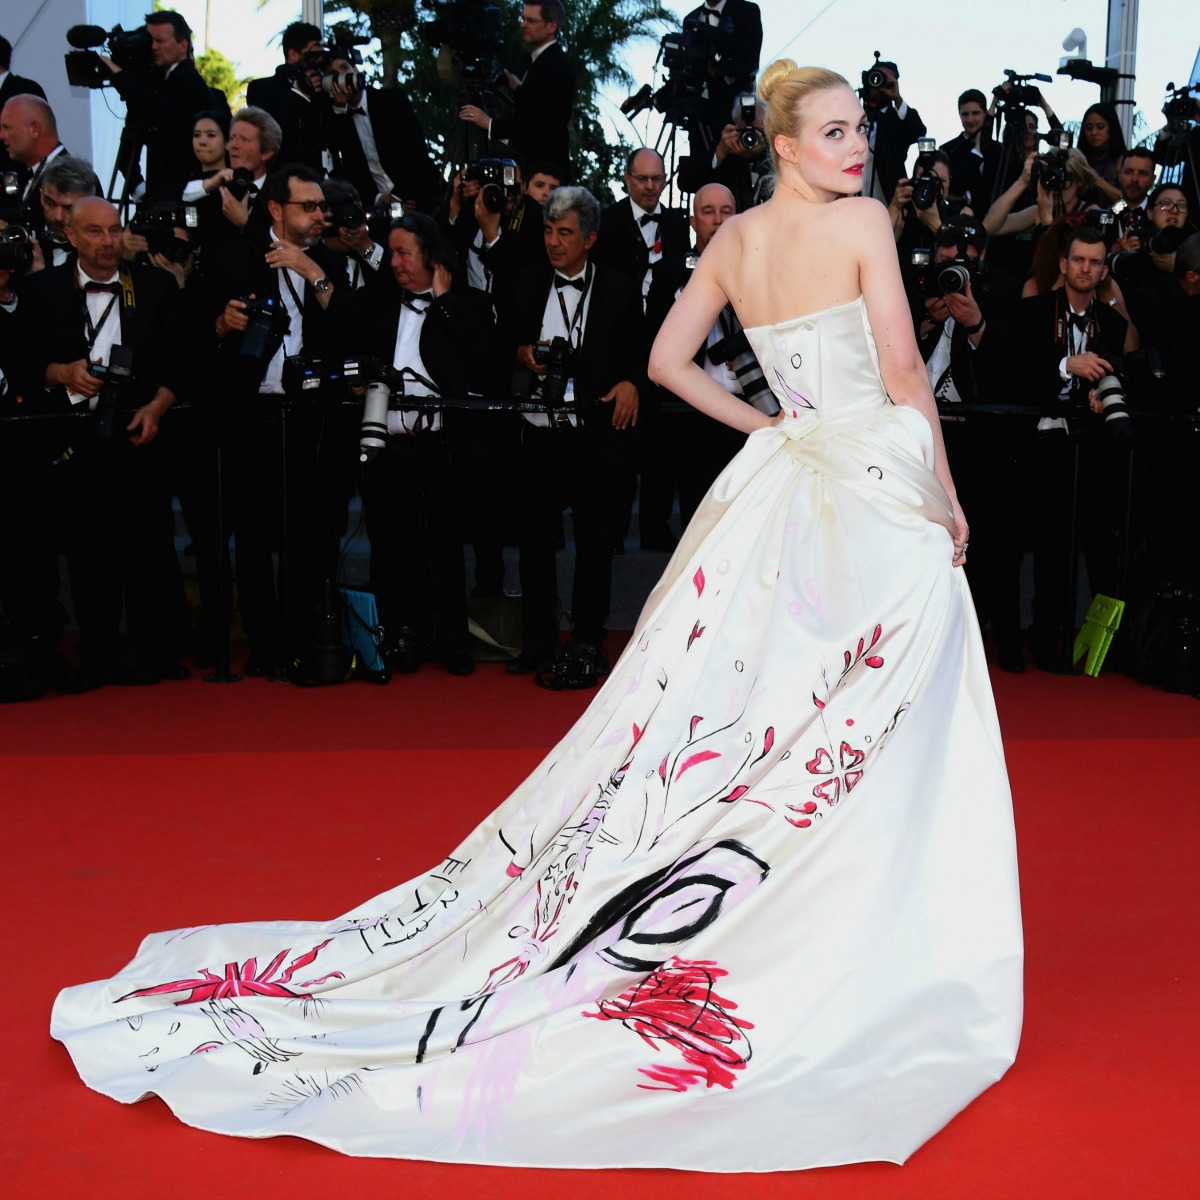 20 Best Cannes 2017 Red Carpet Looks - Elle Fanning in Vivienne Westwood Couture